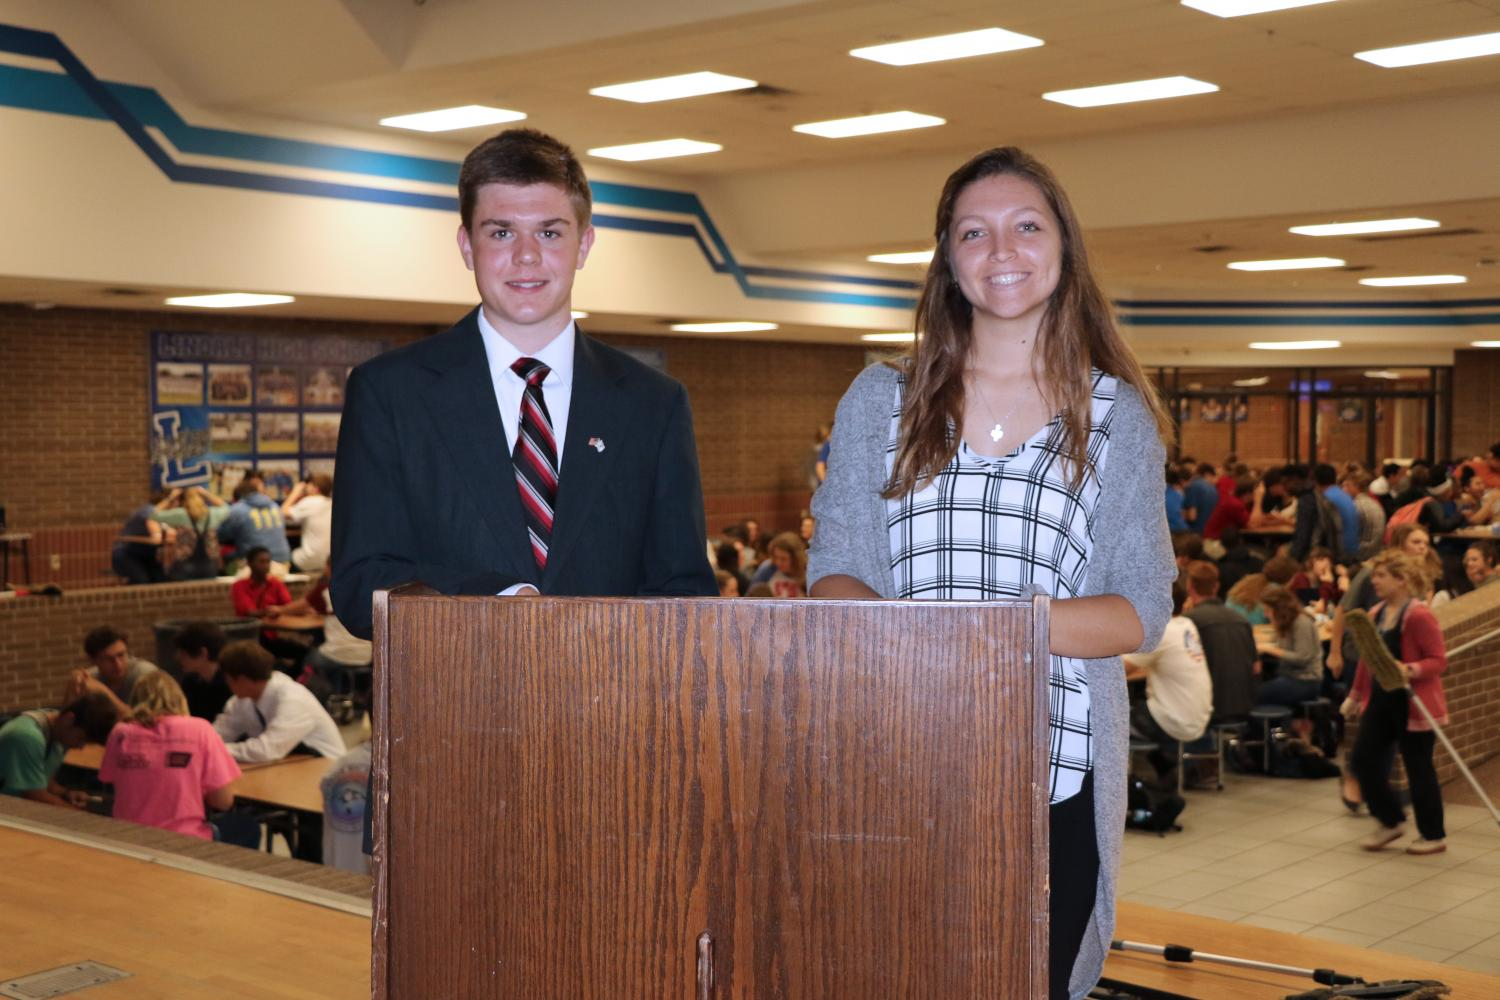 """Seniors Savannah Pruitt and Brady Weaver received the """"Most Likely to Make a Difference"""" Superlative.  """"It's an honor that people see me as a world changer,"""" Senior Savannah Pruitt said. """" I am always striving to make a difference in people's lives."""" Savannah has enjoyed her time making friends and has made plenty of memories here at LHS. Brady has enjoyed the friday night lights, hanging out with friends, and marching at half time. """"As I am living for the Lord, I will be making a difference,"""" Senior Brady Weaver said. """"I want to do what God has called me to do, and if I do that, then I believe that I will make a difference. The world needs to hear the good news found in Christ Jesus and I want to tell that good news to everyone."""""""